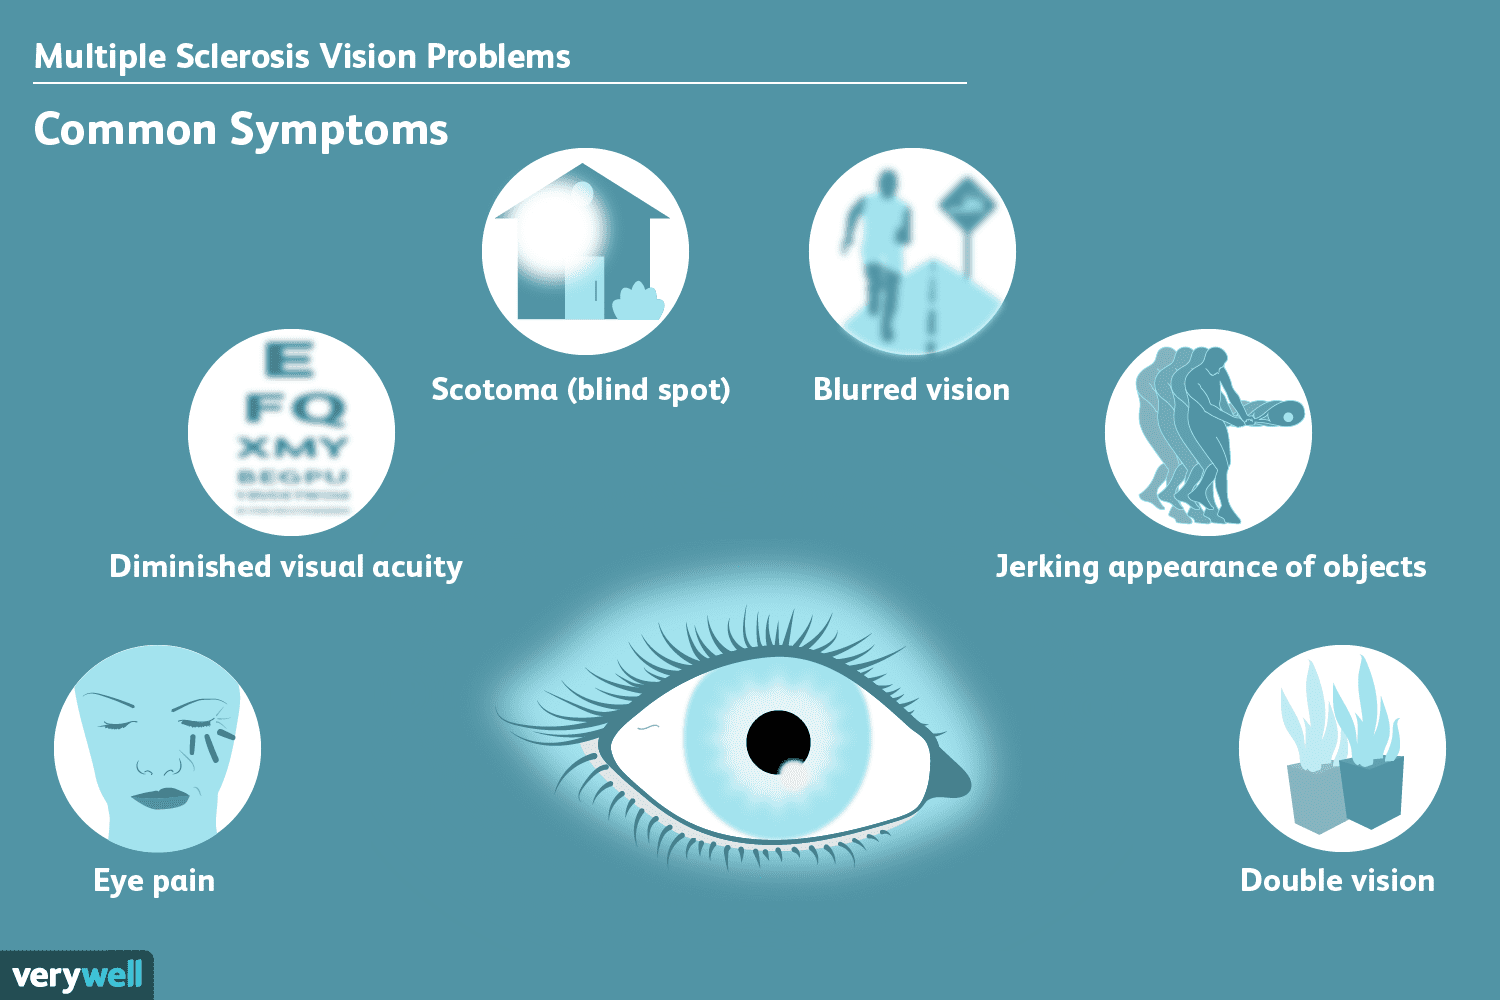 MS and vision problems